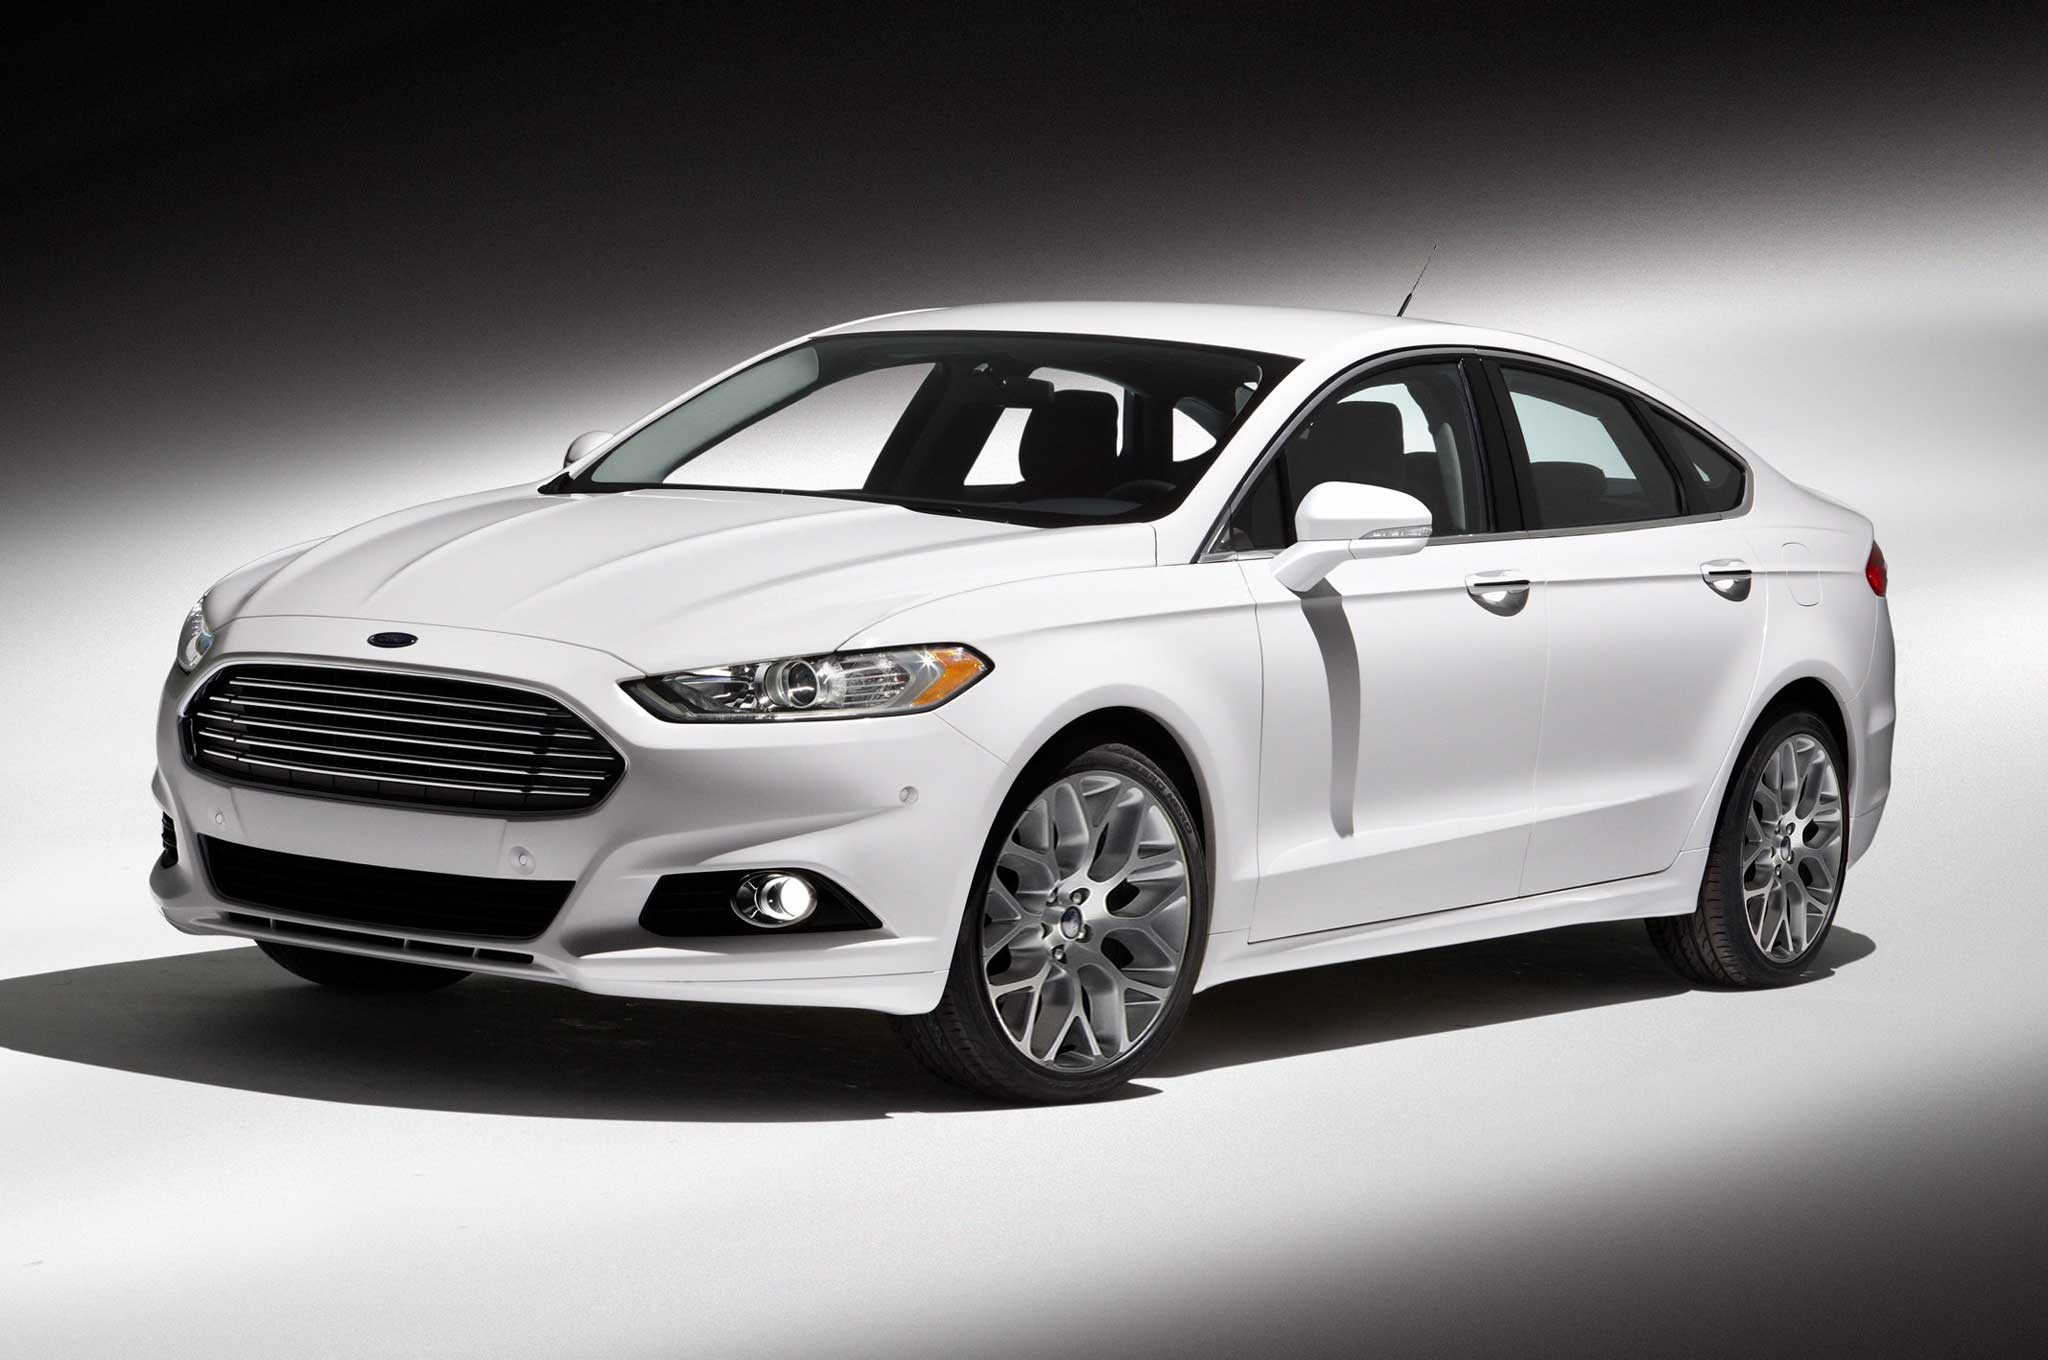 2014 Ford Fusion #2